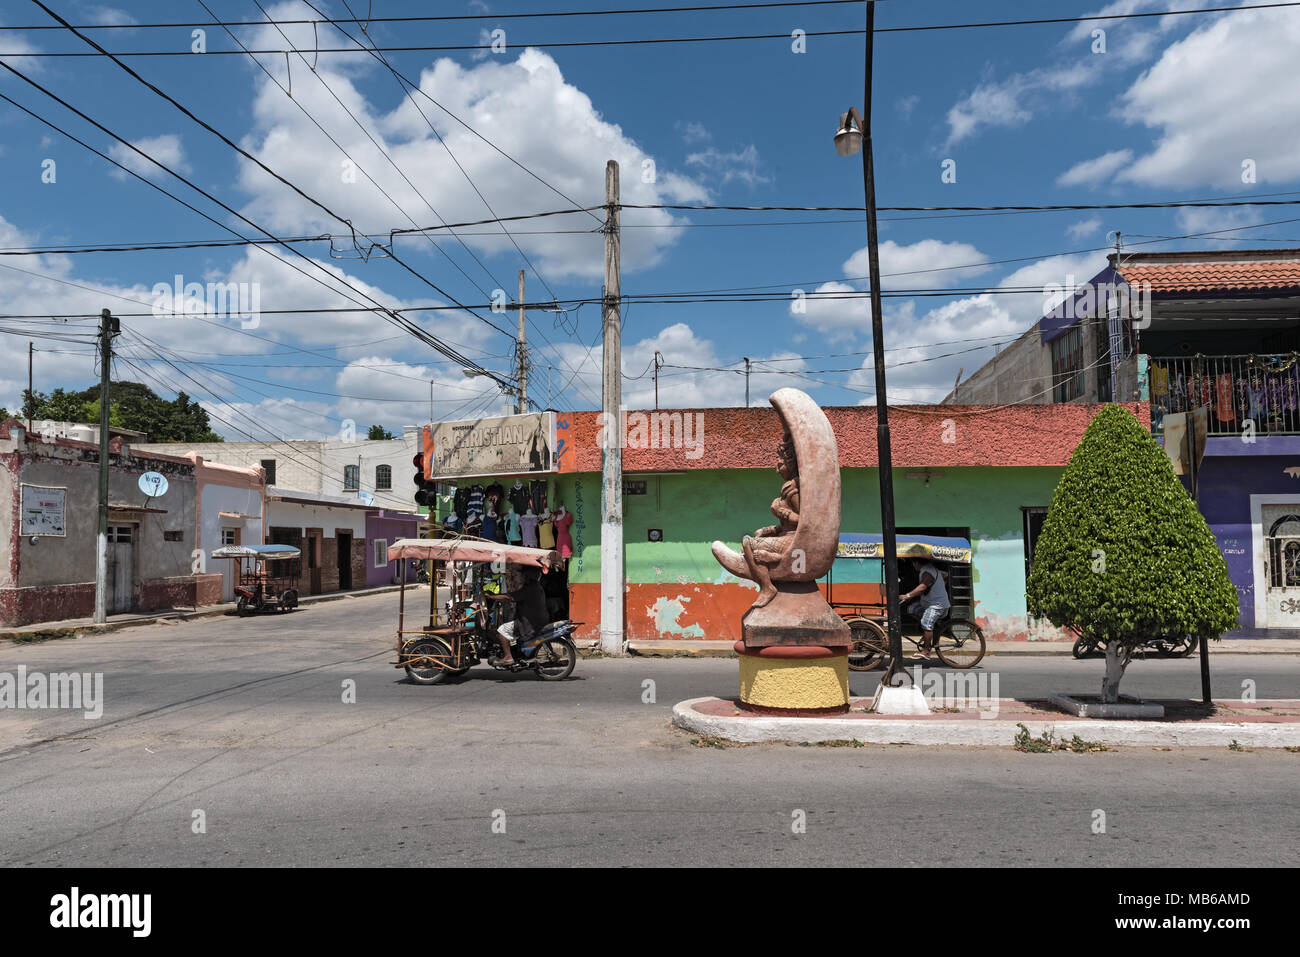 Road junction with two tricycles in Ticul, yucatan, Mexico - Stock Image